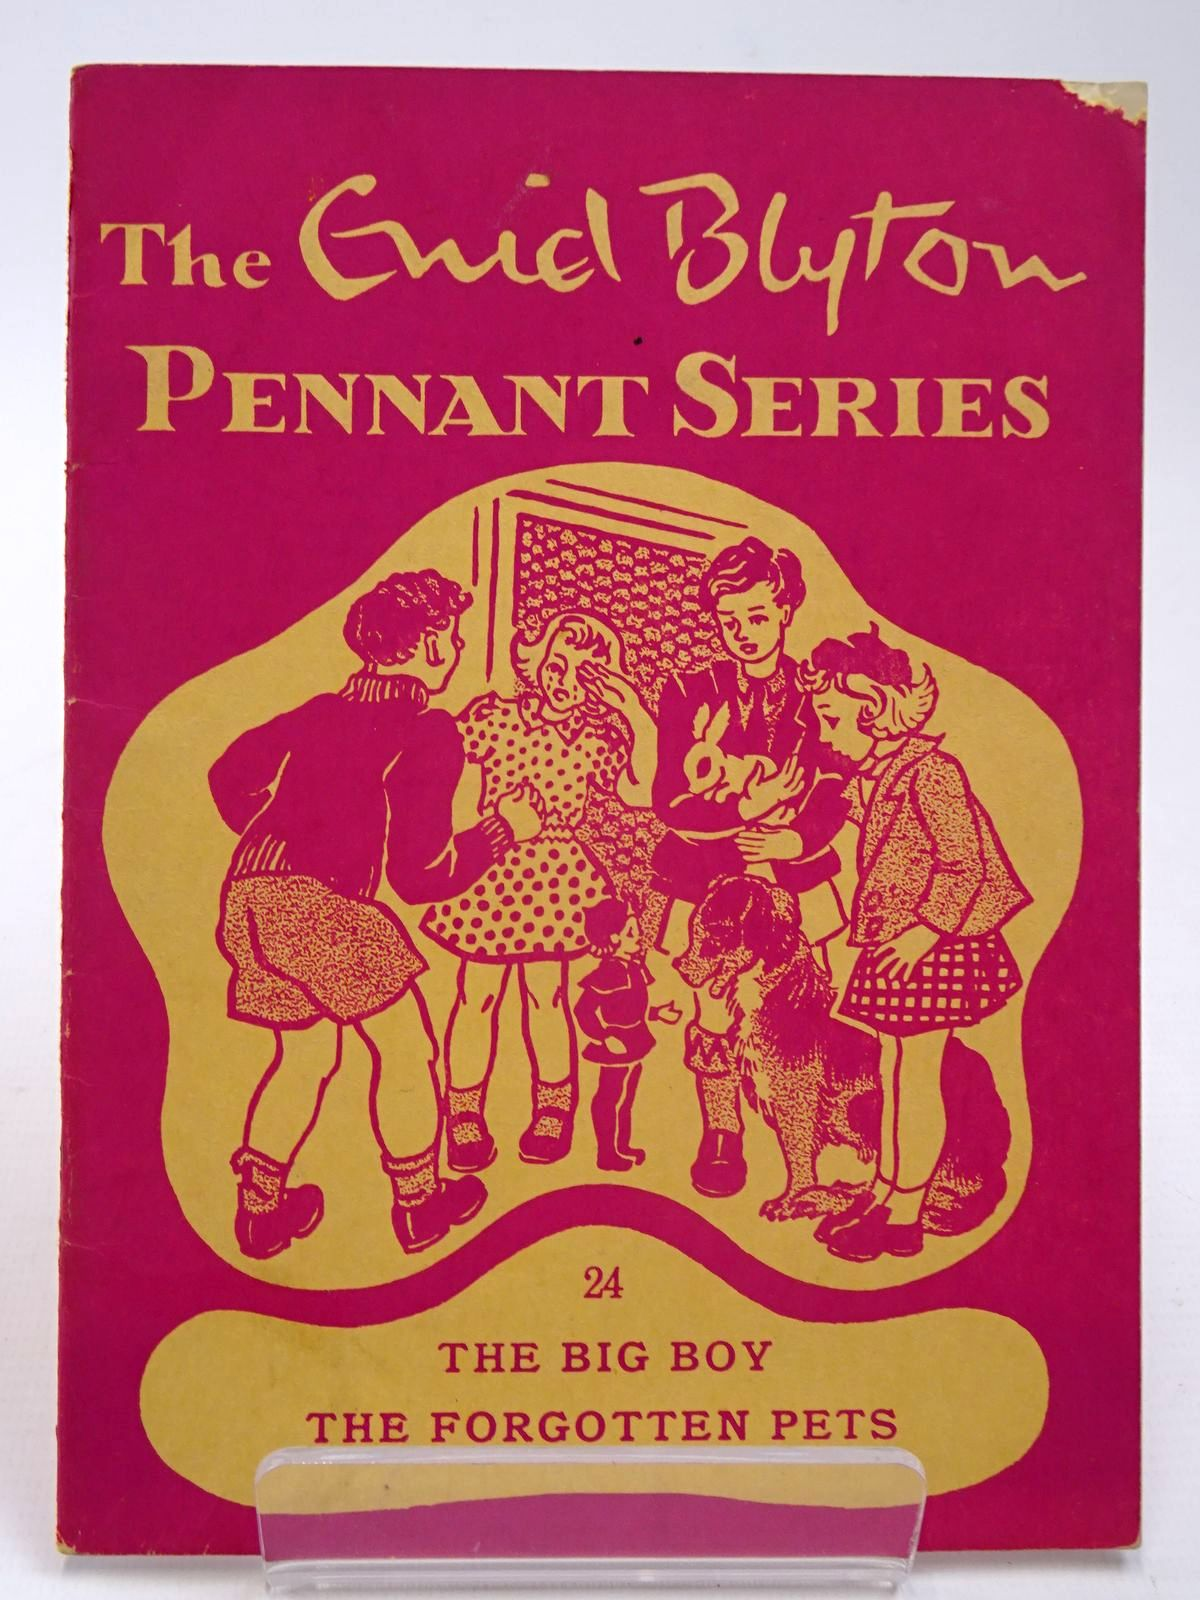 Photo of THE ENID BLYTON PENNANT SERIES No. 24 THE BIG BOY / THE FORGOTTEN PETS written by Blyton, Enid illustrated by Soper, Eileen Main, Jean published by Macmillan & Co. Ltd. (STOCK CODE: 2130532)  for sale by Stella & Rose's Books